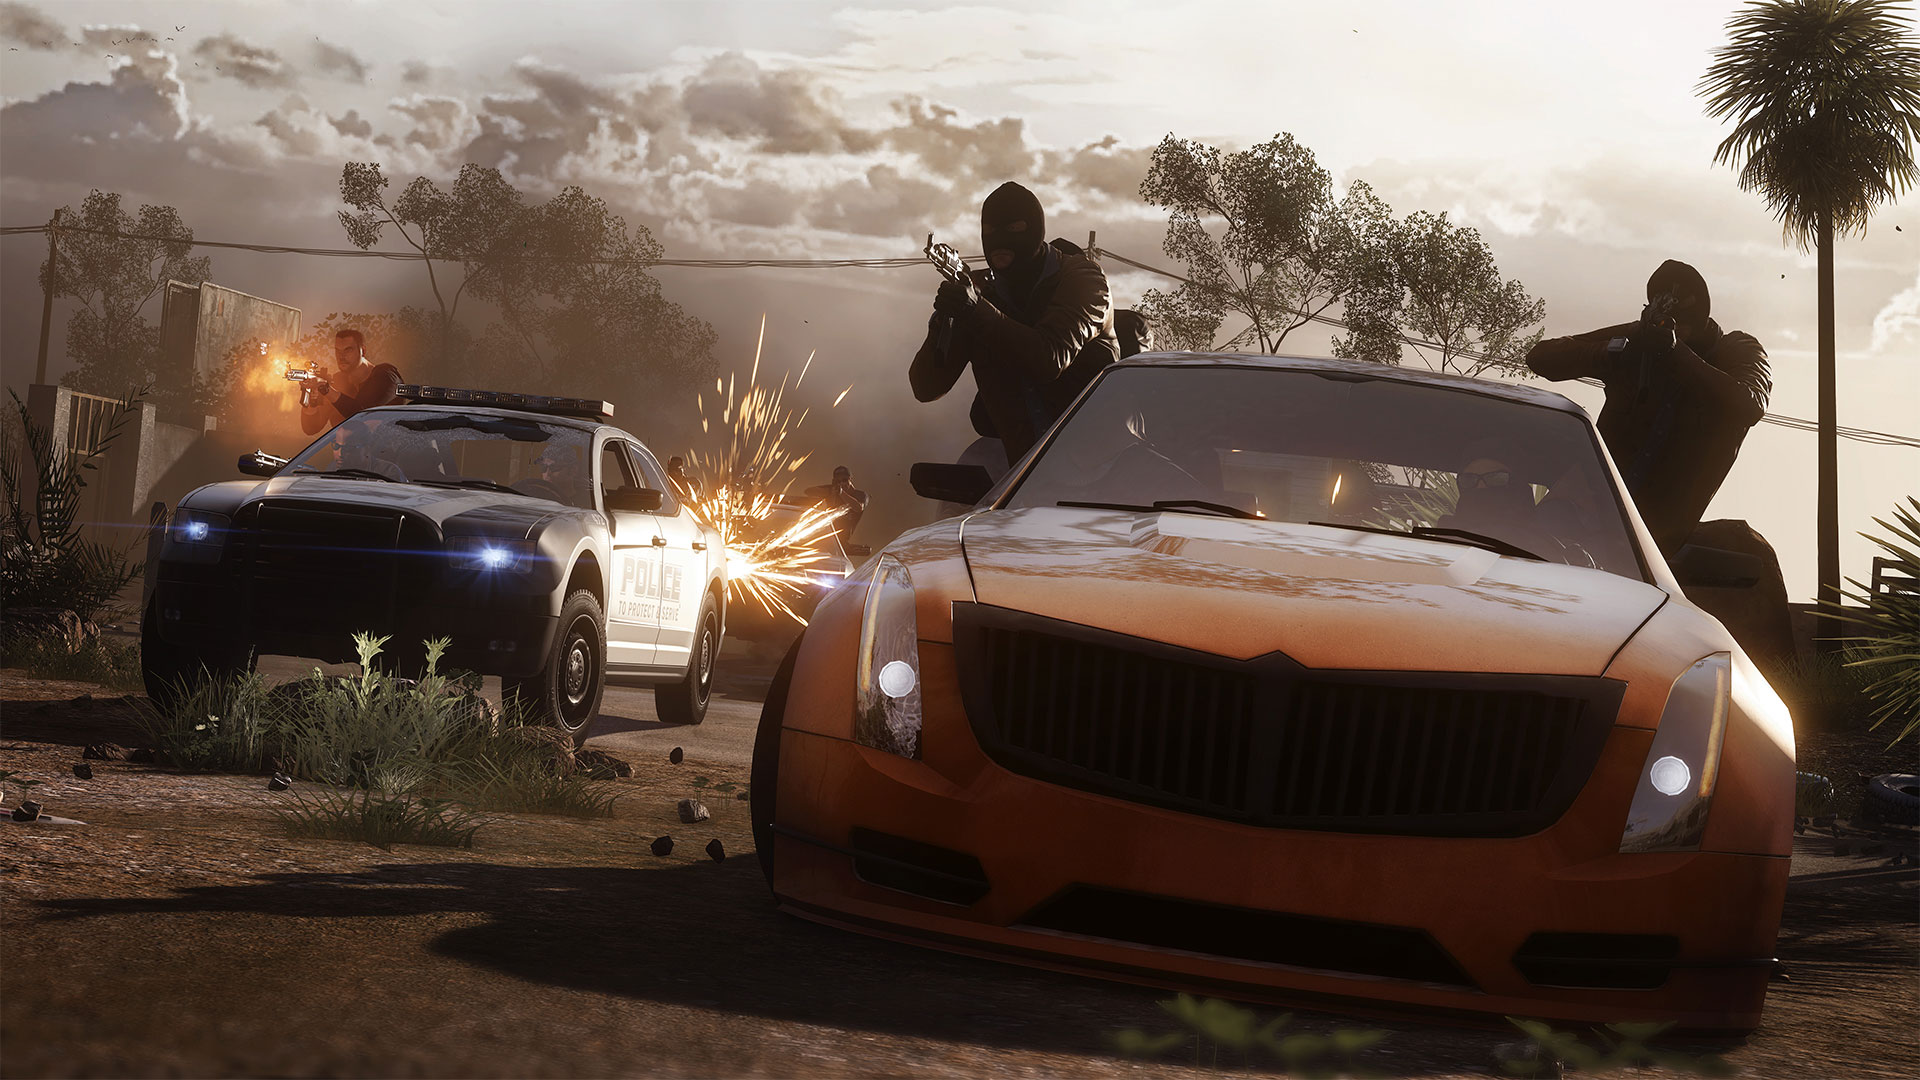 Battlefield Hardline creative director on the game's 'spiritual center,' police militarization